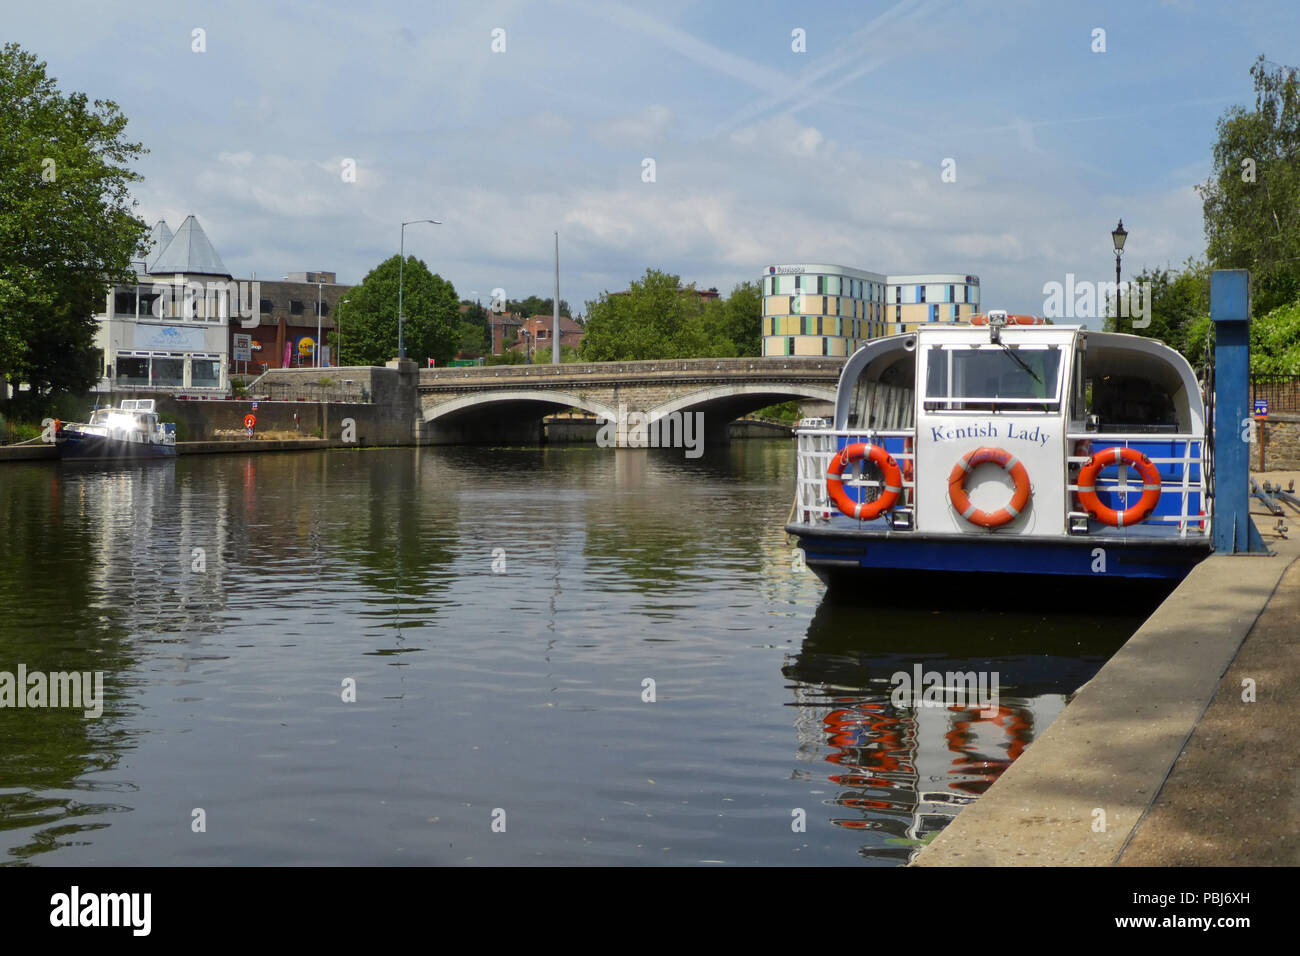 River cruiser 'Kentish Lady' waiting to take on passengers for boat trip, river Medway, Maidstone, Kent, England - Stock Image